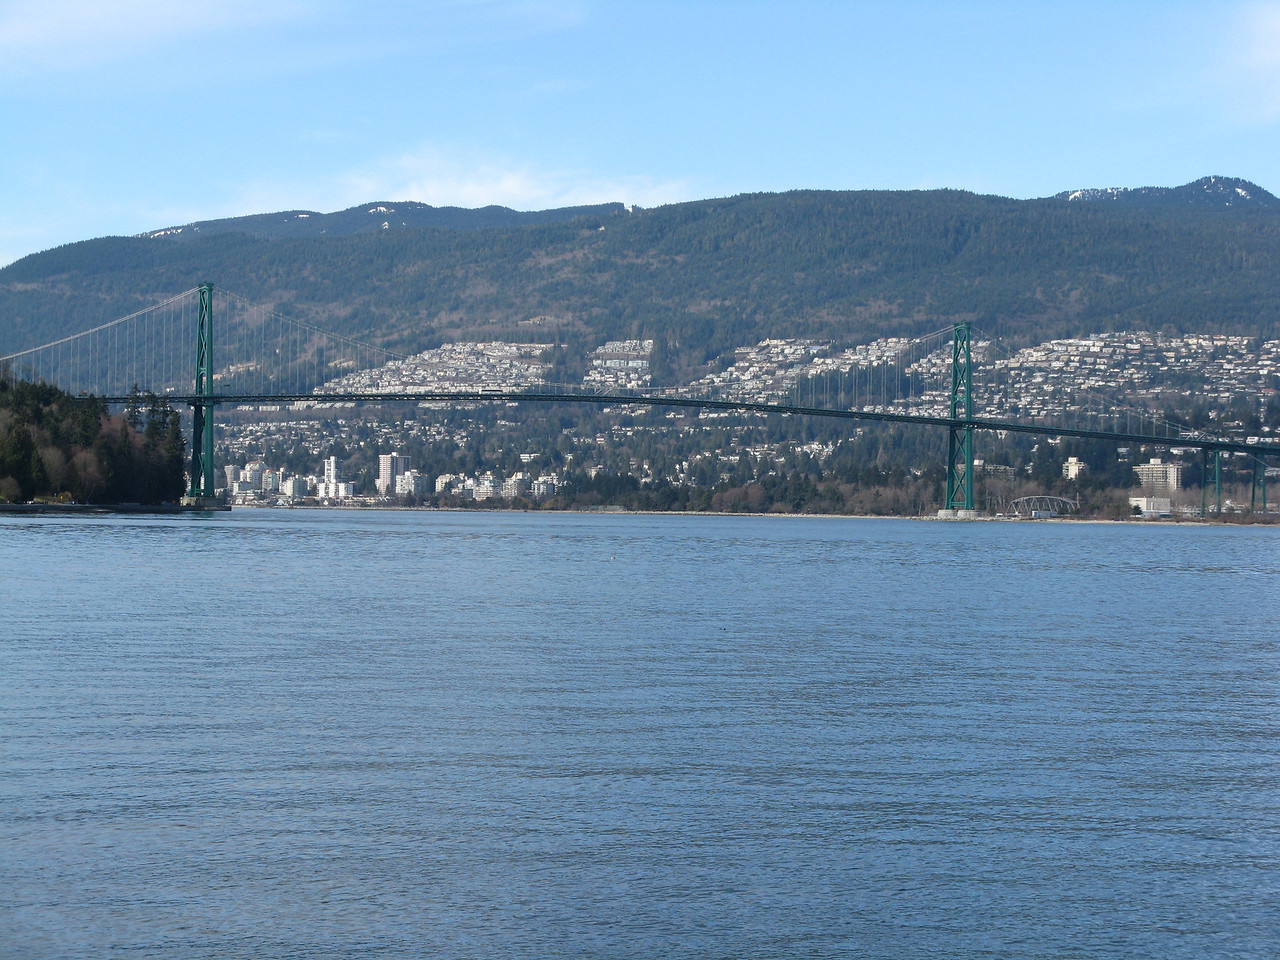 Lions Gate Bridge crosses Burrard Inlet between Stanley Park on the left and the suburb of Capilano on the right.